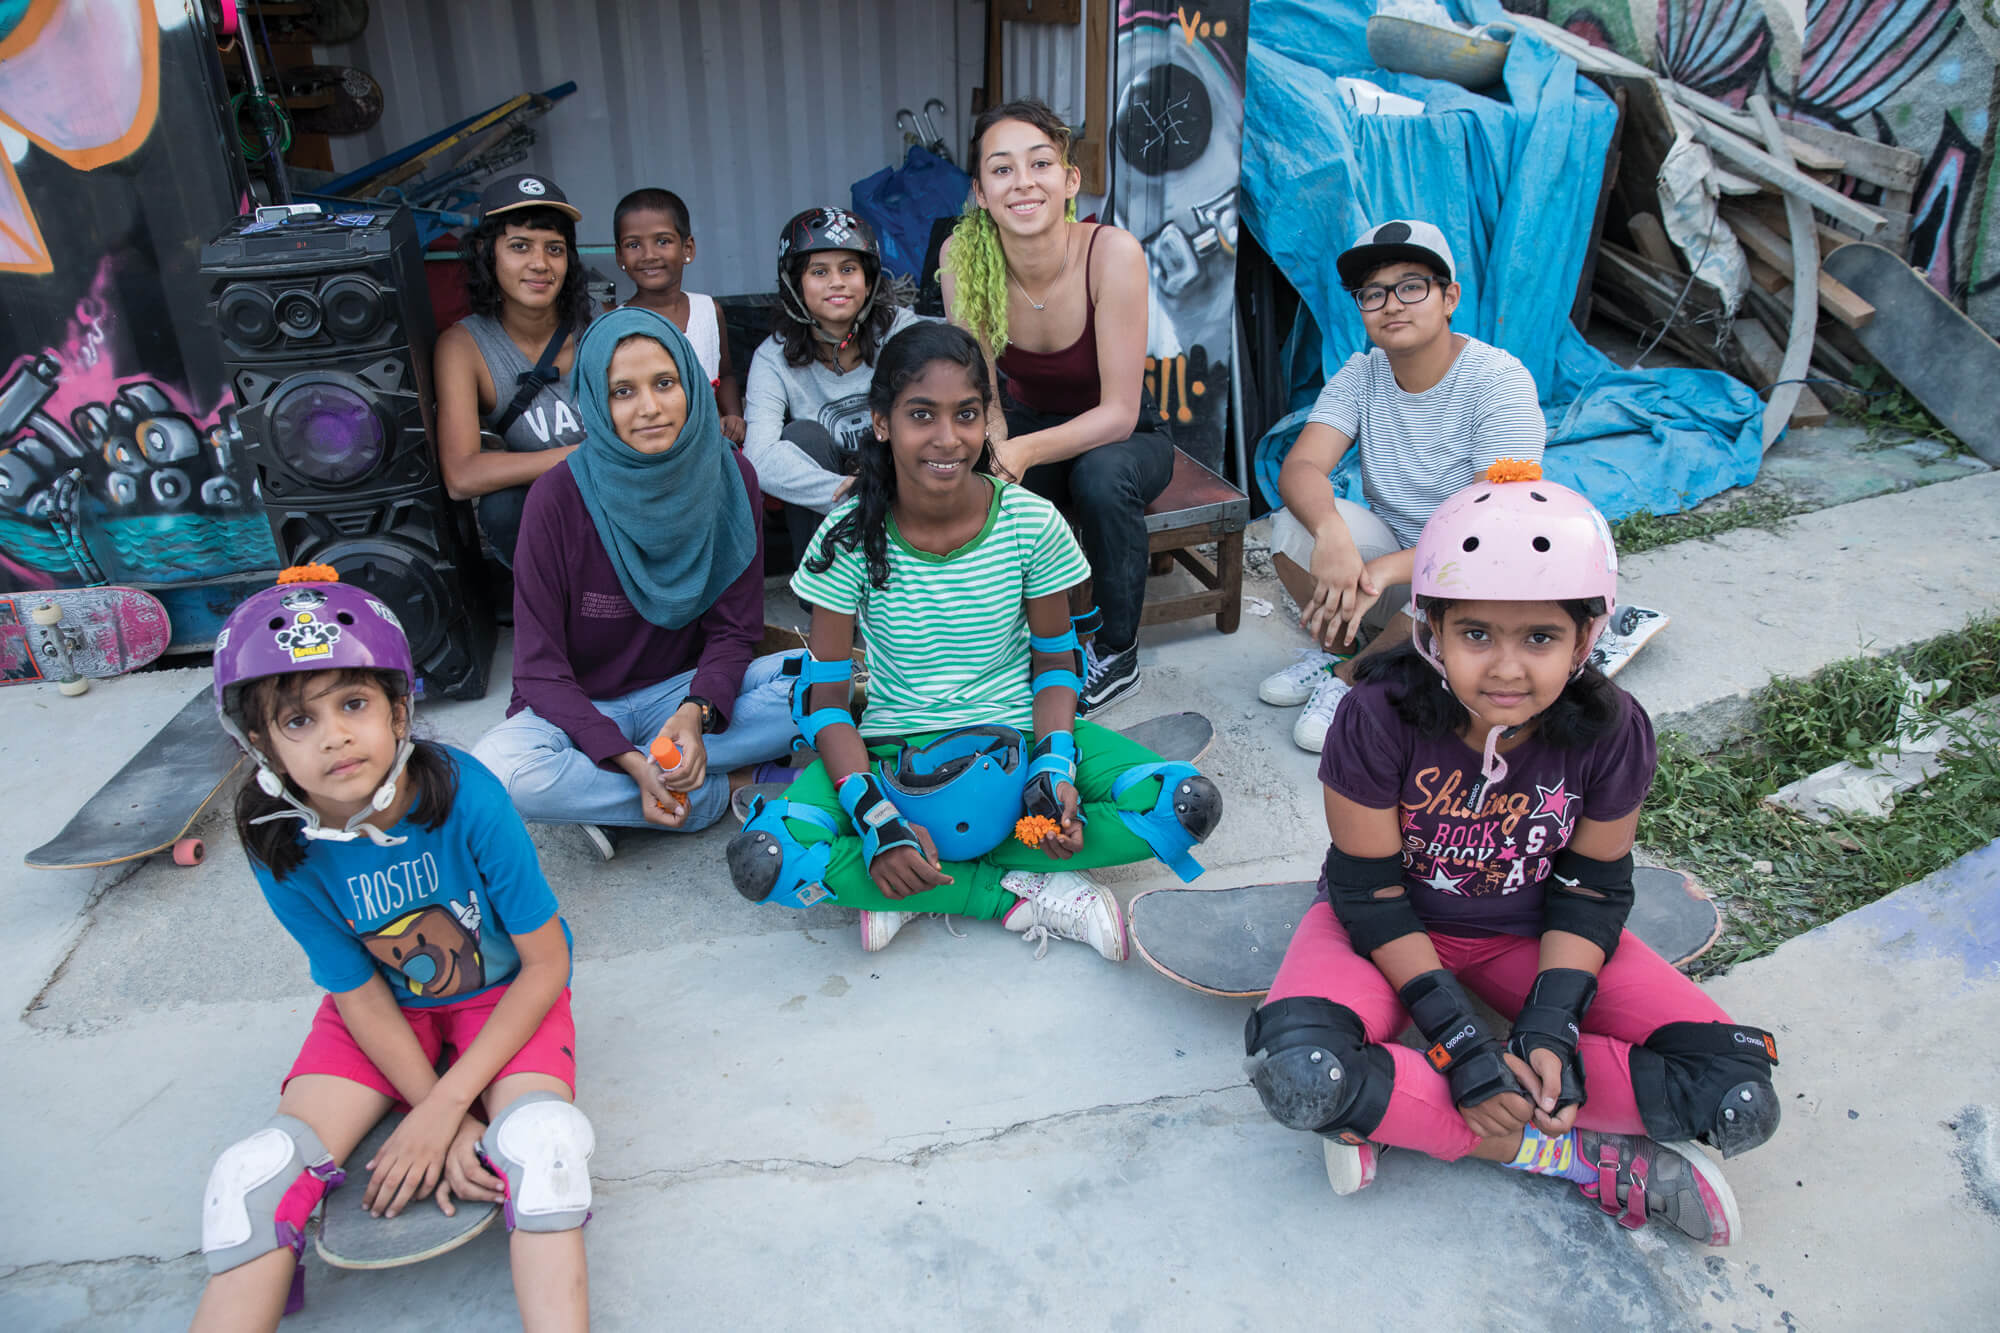 escuela de girls skate en India